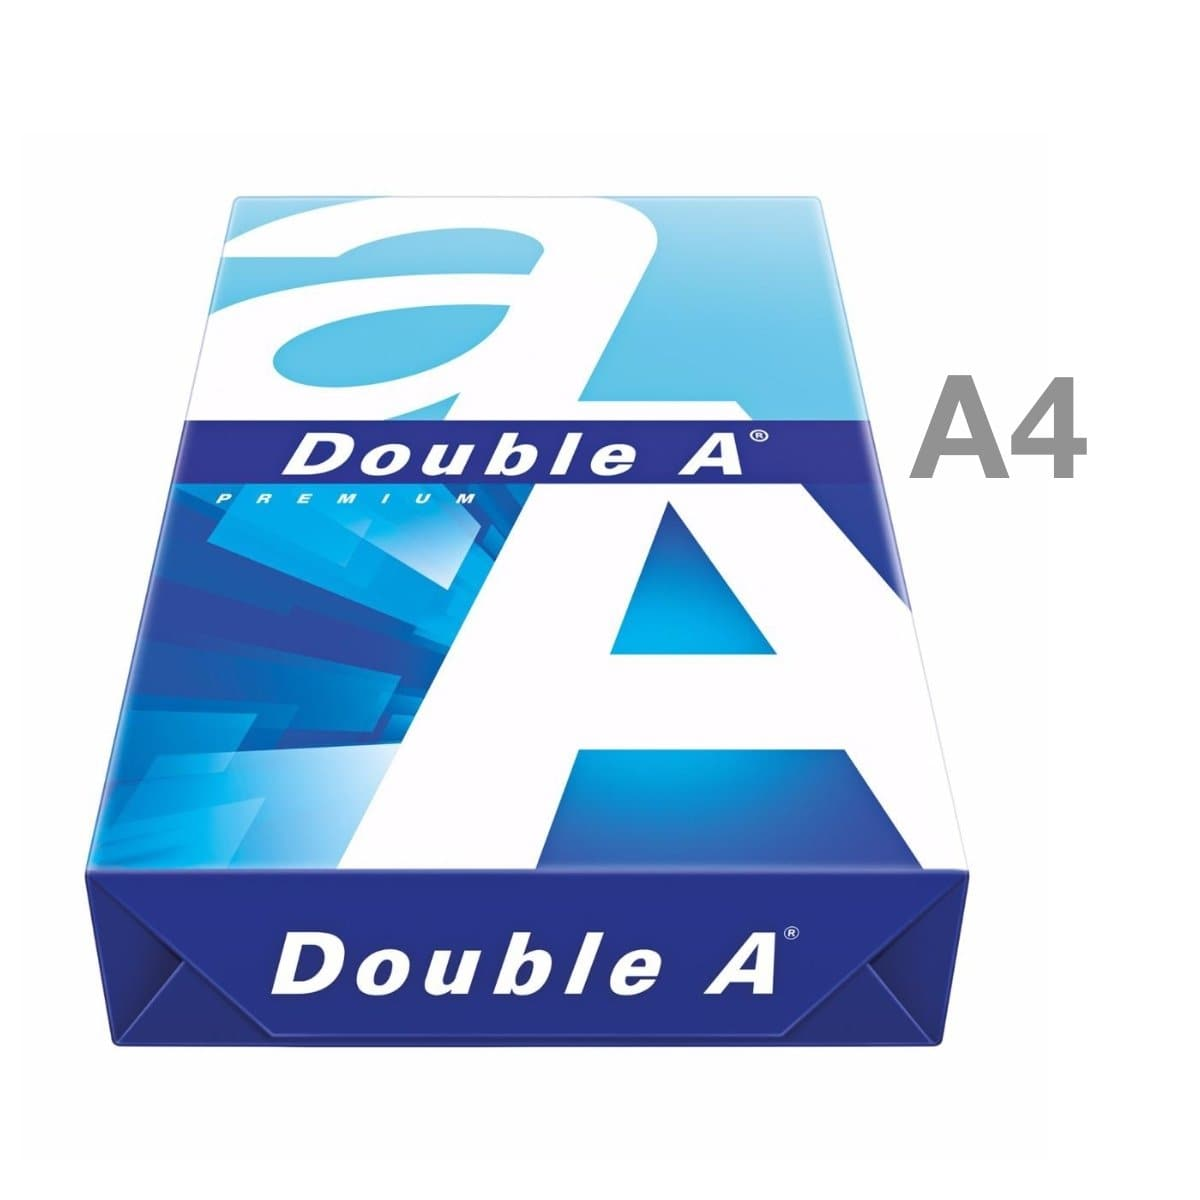 Double A Premium Paper A4, 80gsm, 500sheets/ream, White